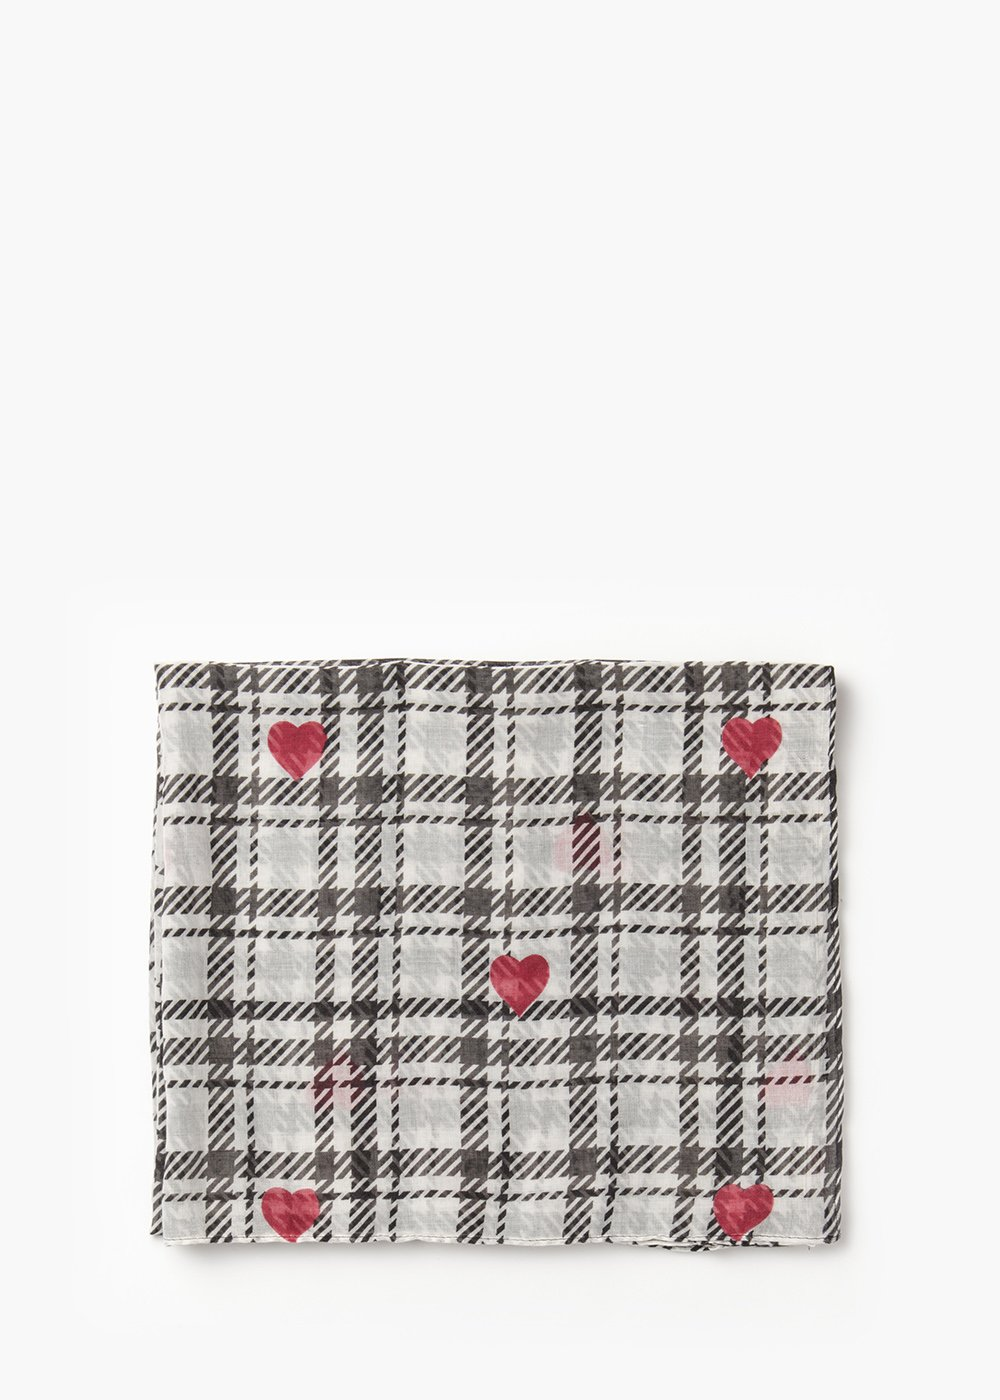 Sonya scarf with check print and red hearts - White / Black Fantasia - Woman